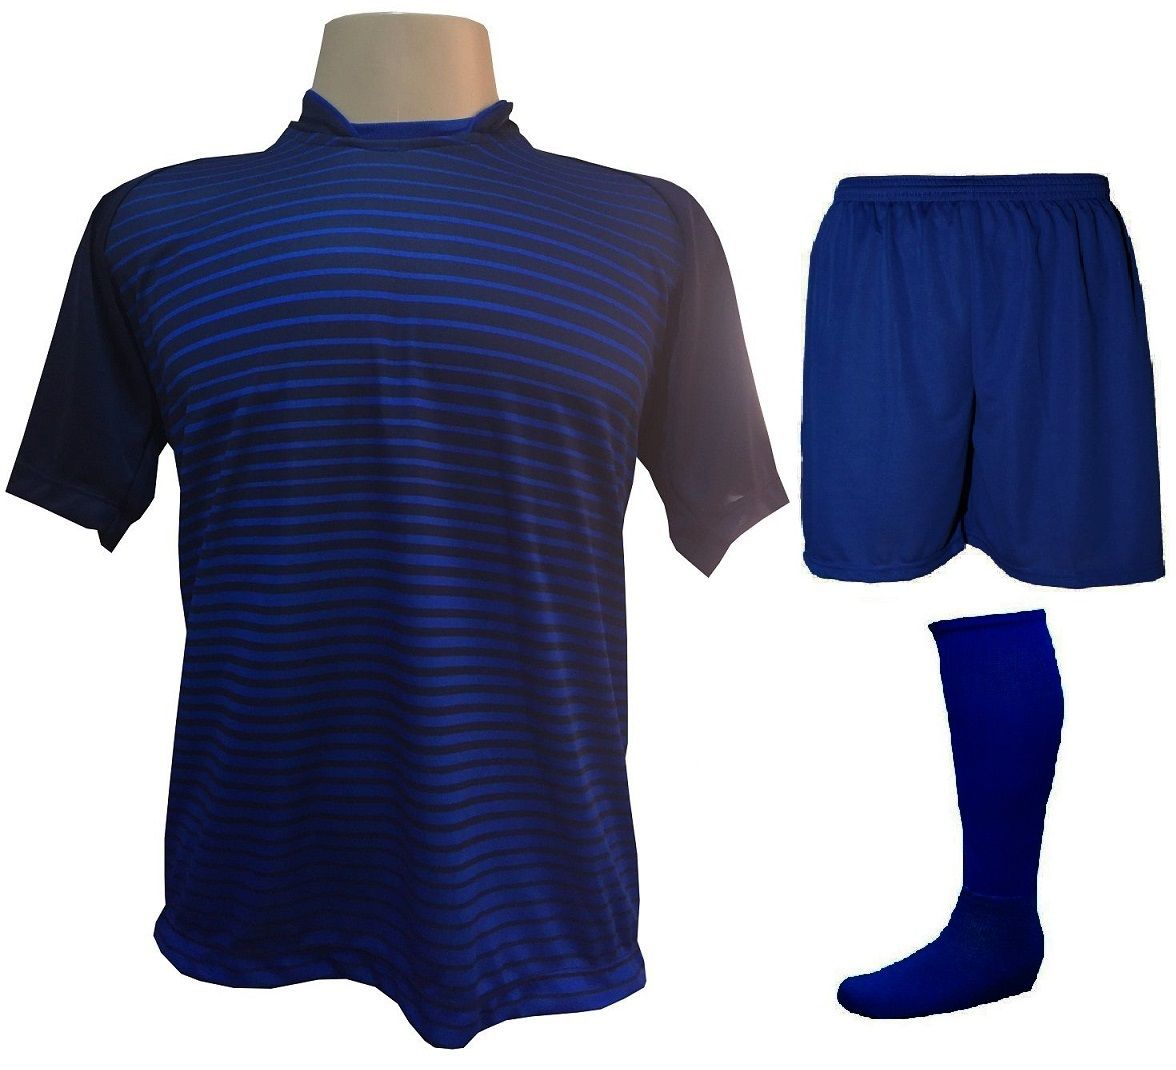 Uniforme Esportivo com 12 Camisas modelo City Marinho/Royal + 12 Calções modelo Madrid Royal + 12 Pares de meiões Royal